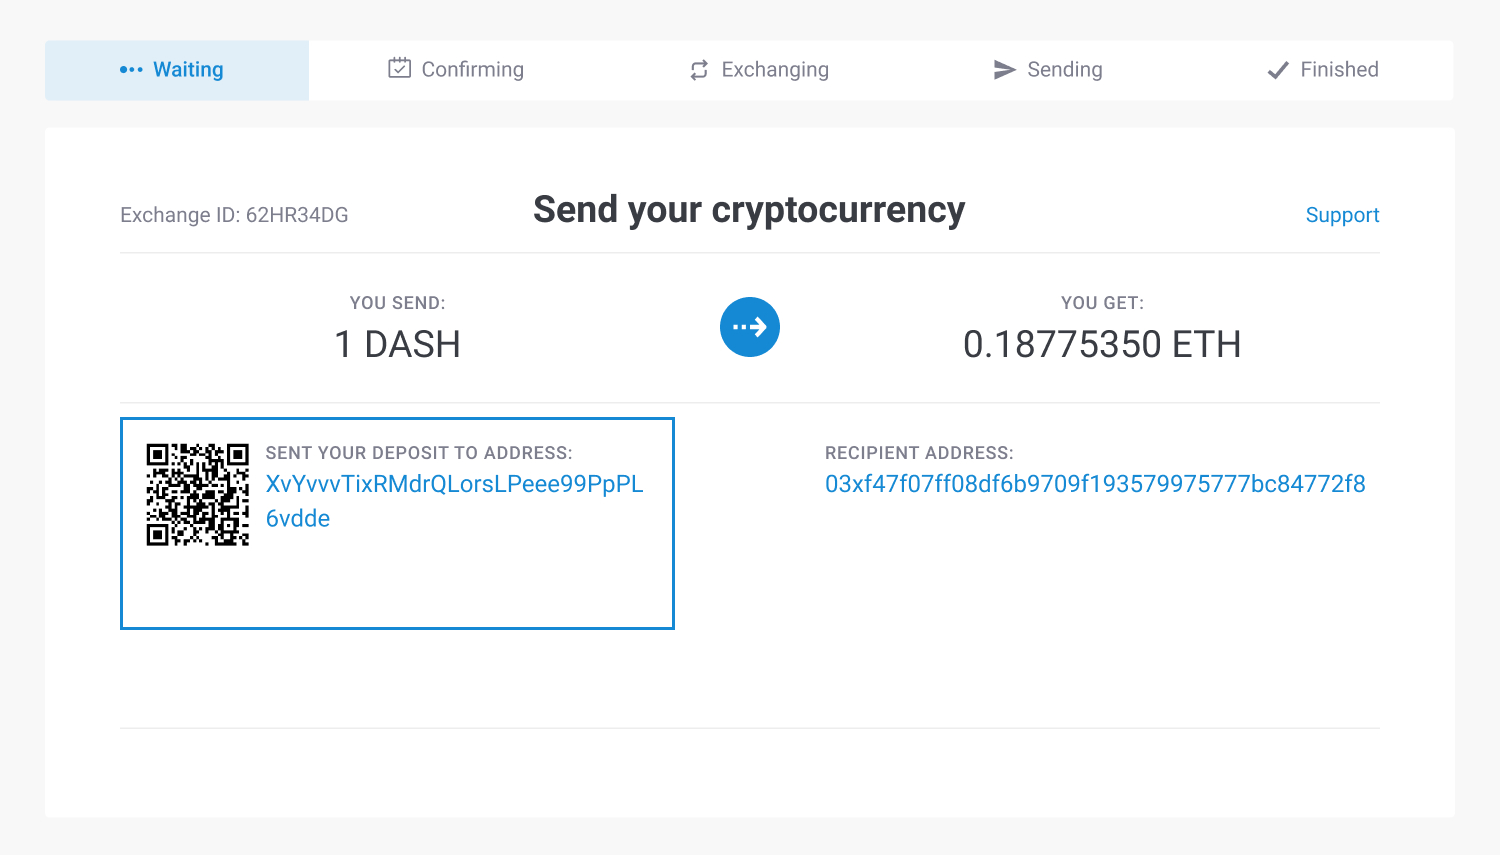 the address to send Dash